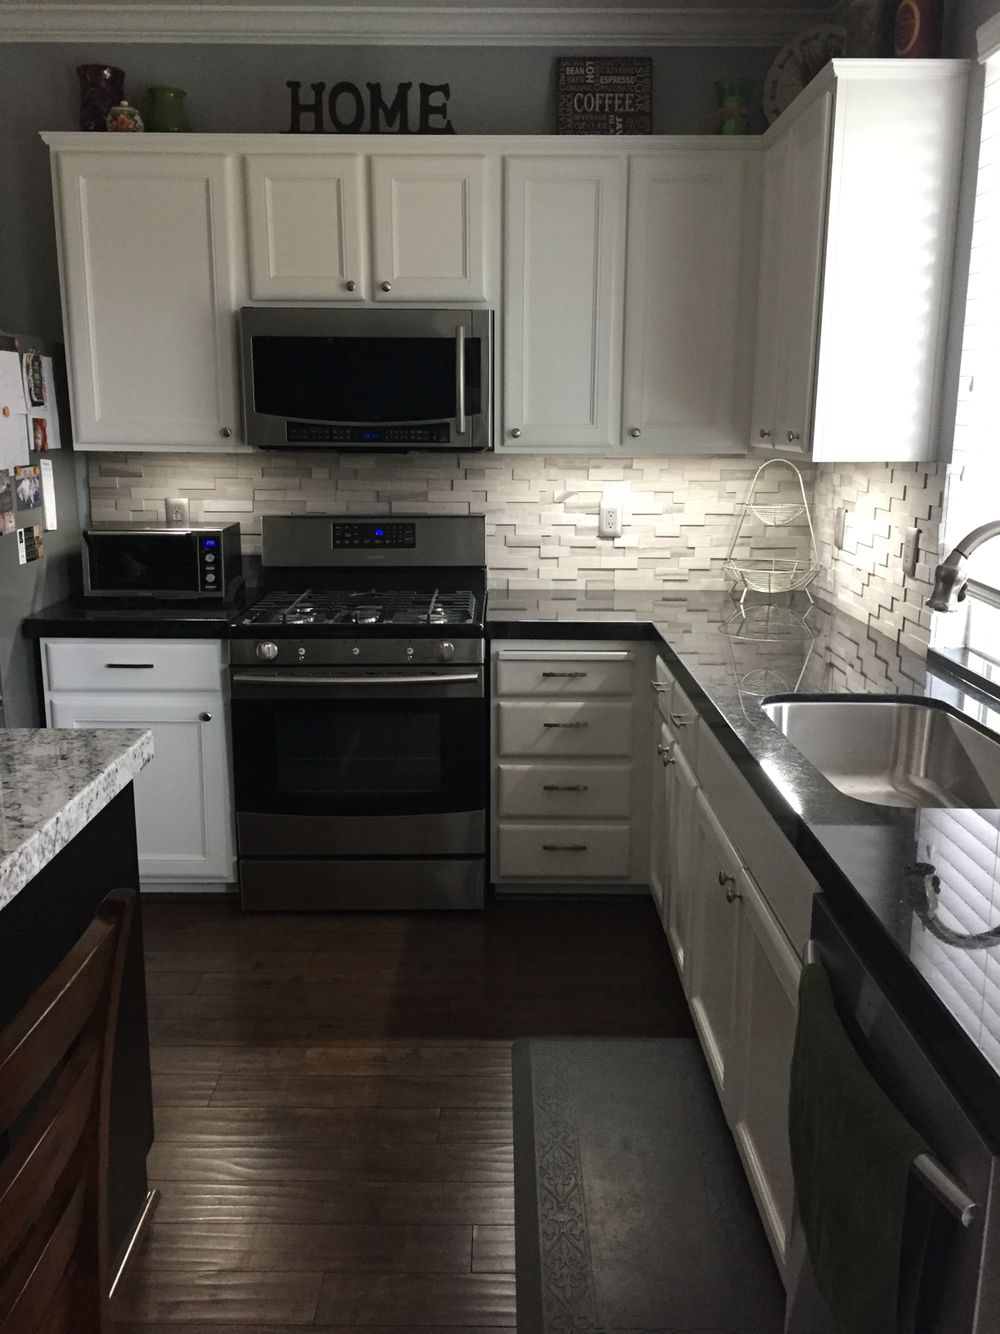 countertops for kitchens Black granite with a gray stone backsplash